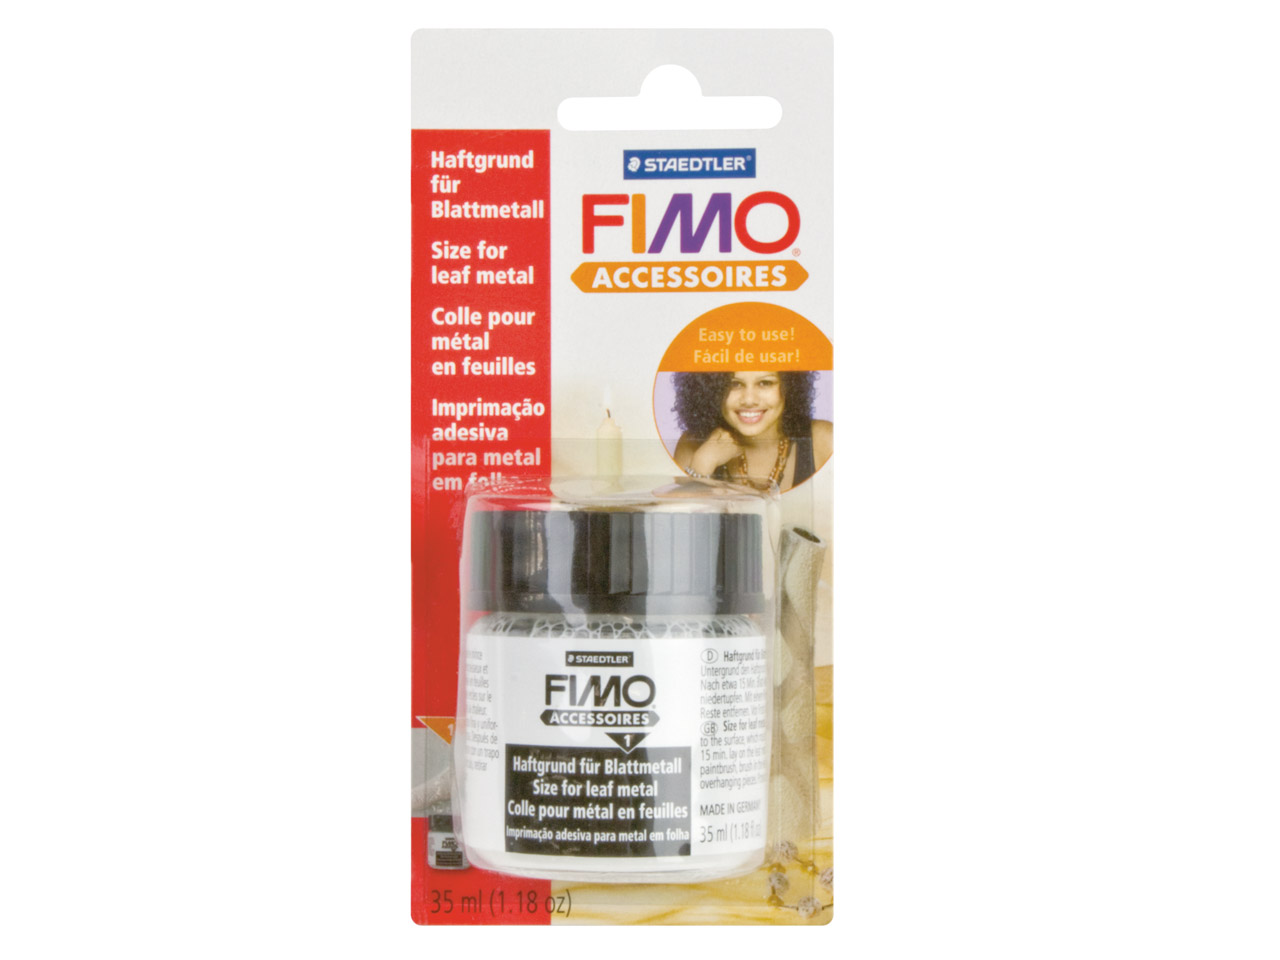 Fimo Size/glue For Leaf Metal 35ml